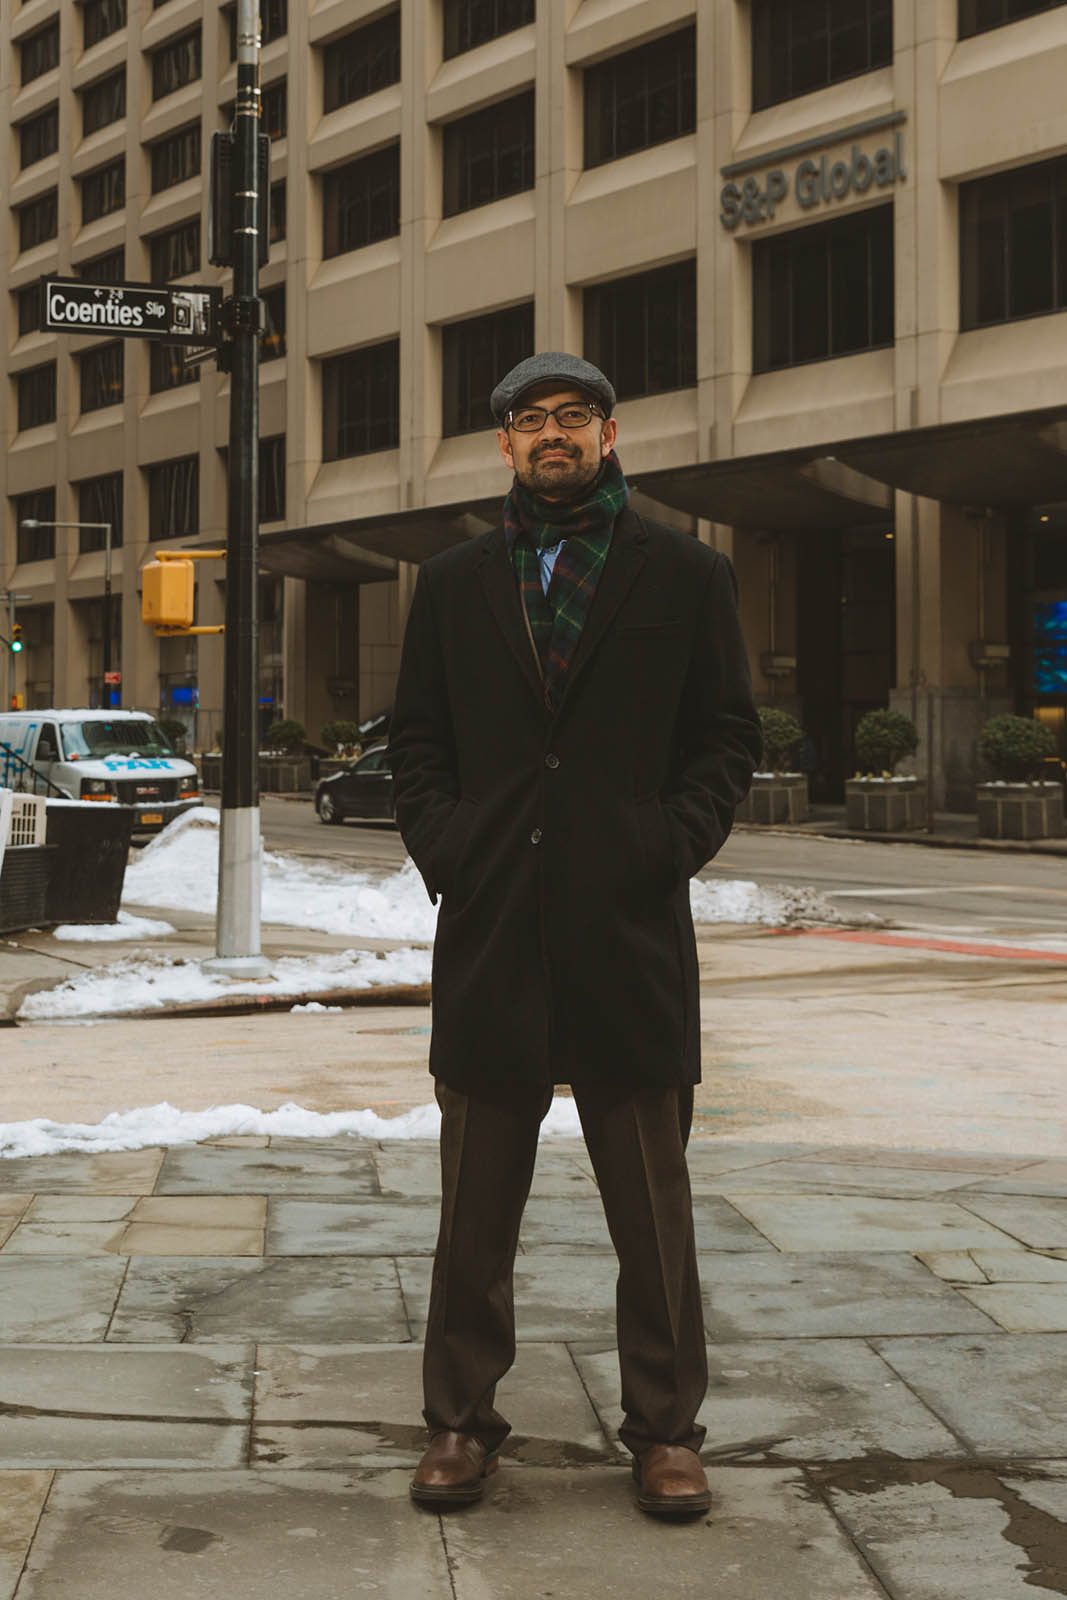 Portrait of Satyam Panday on a New York city block with a brown building in the background.